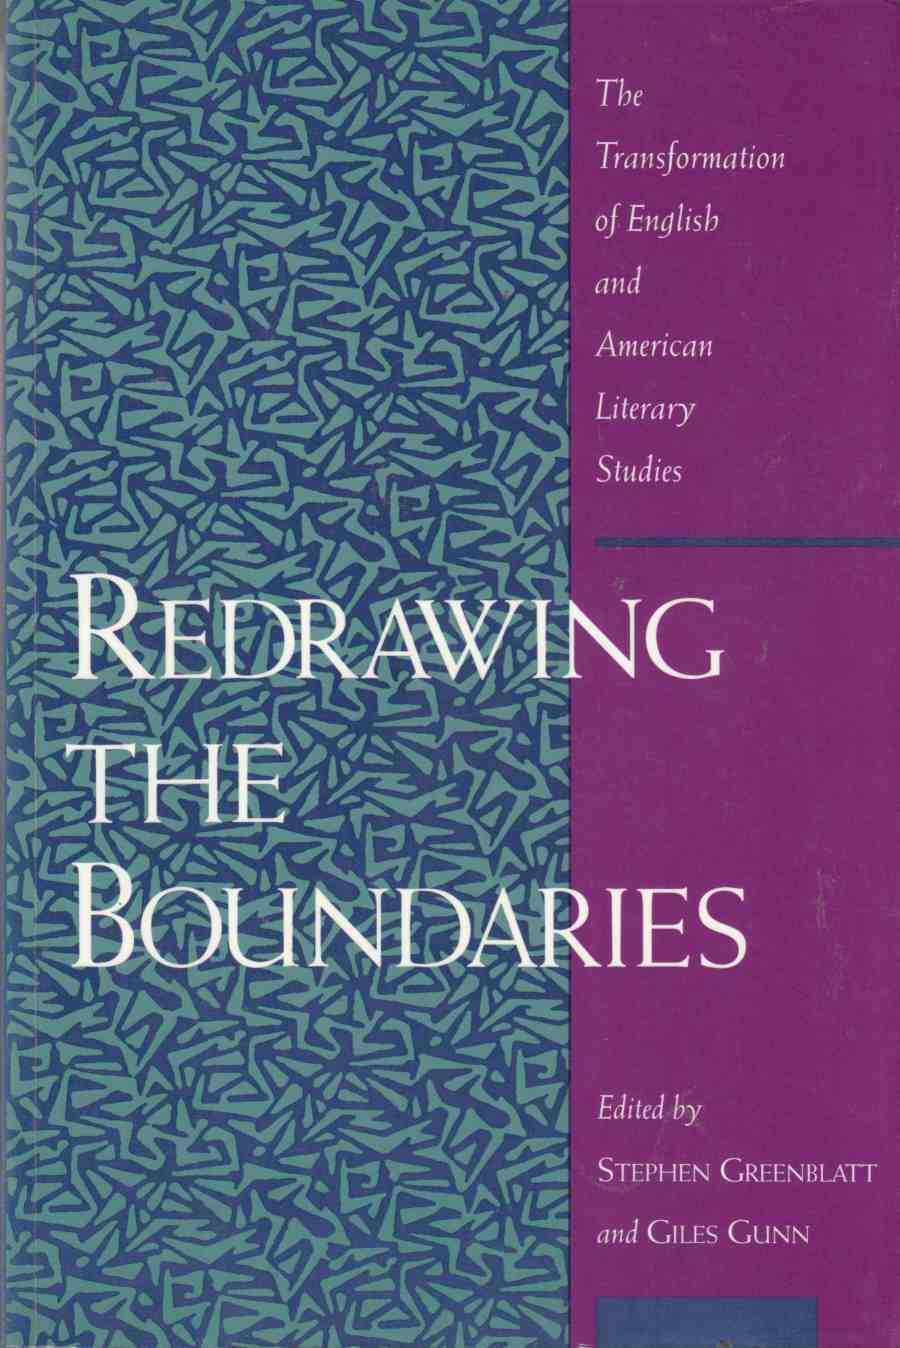 Image for Redrawing the Boundaries: The Transformation of English and American Literary Studies